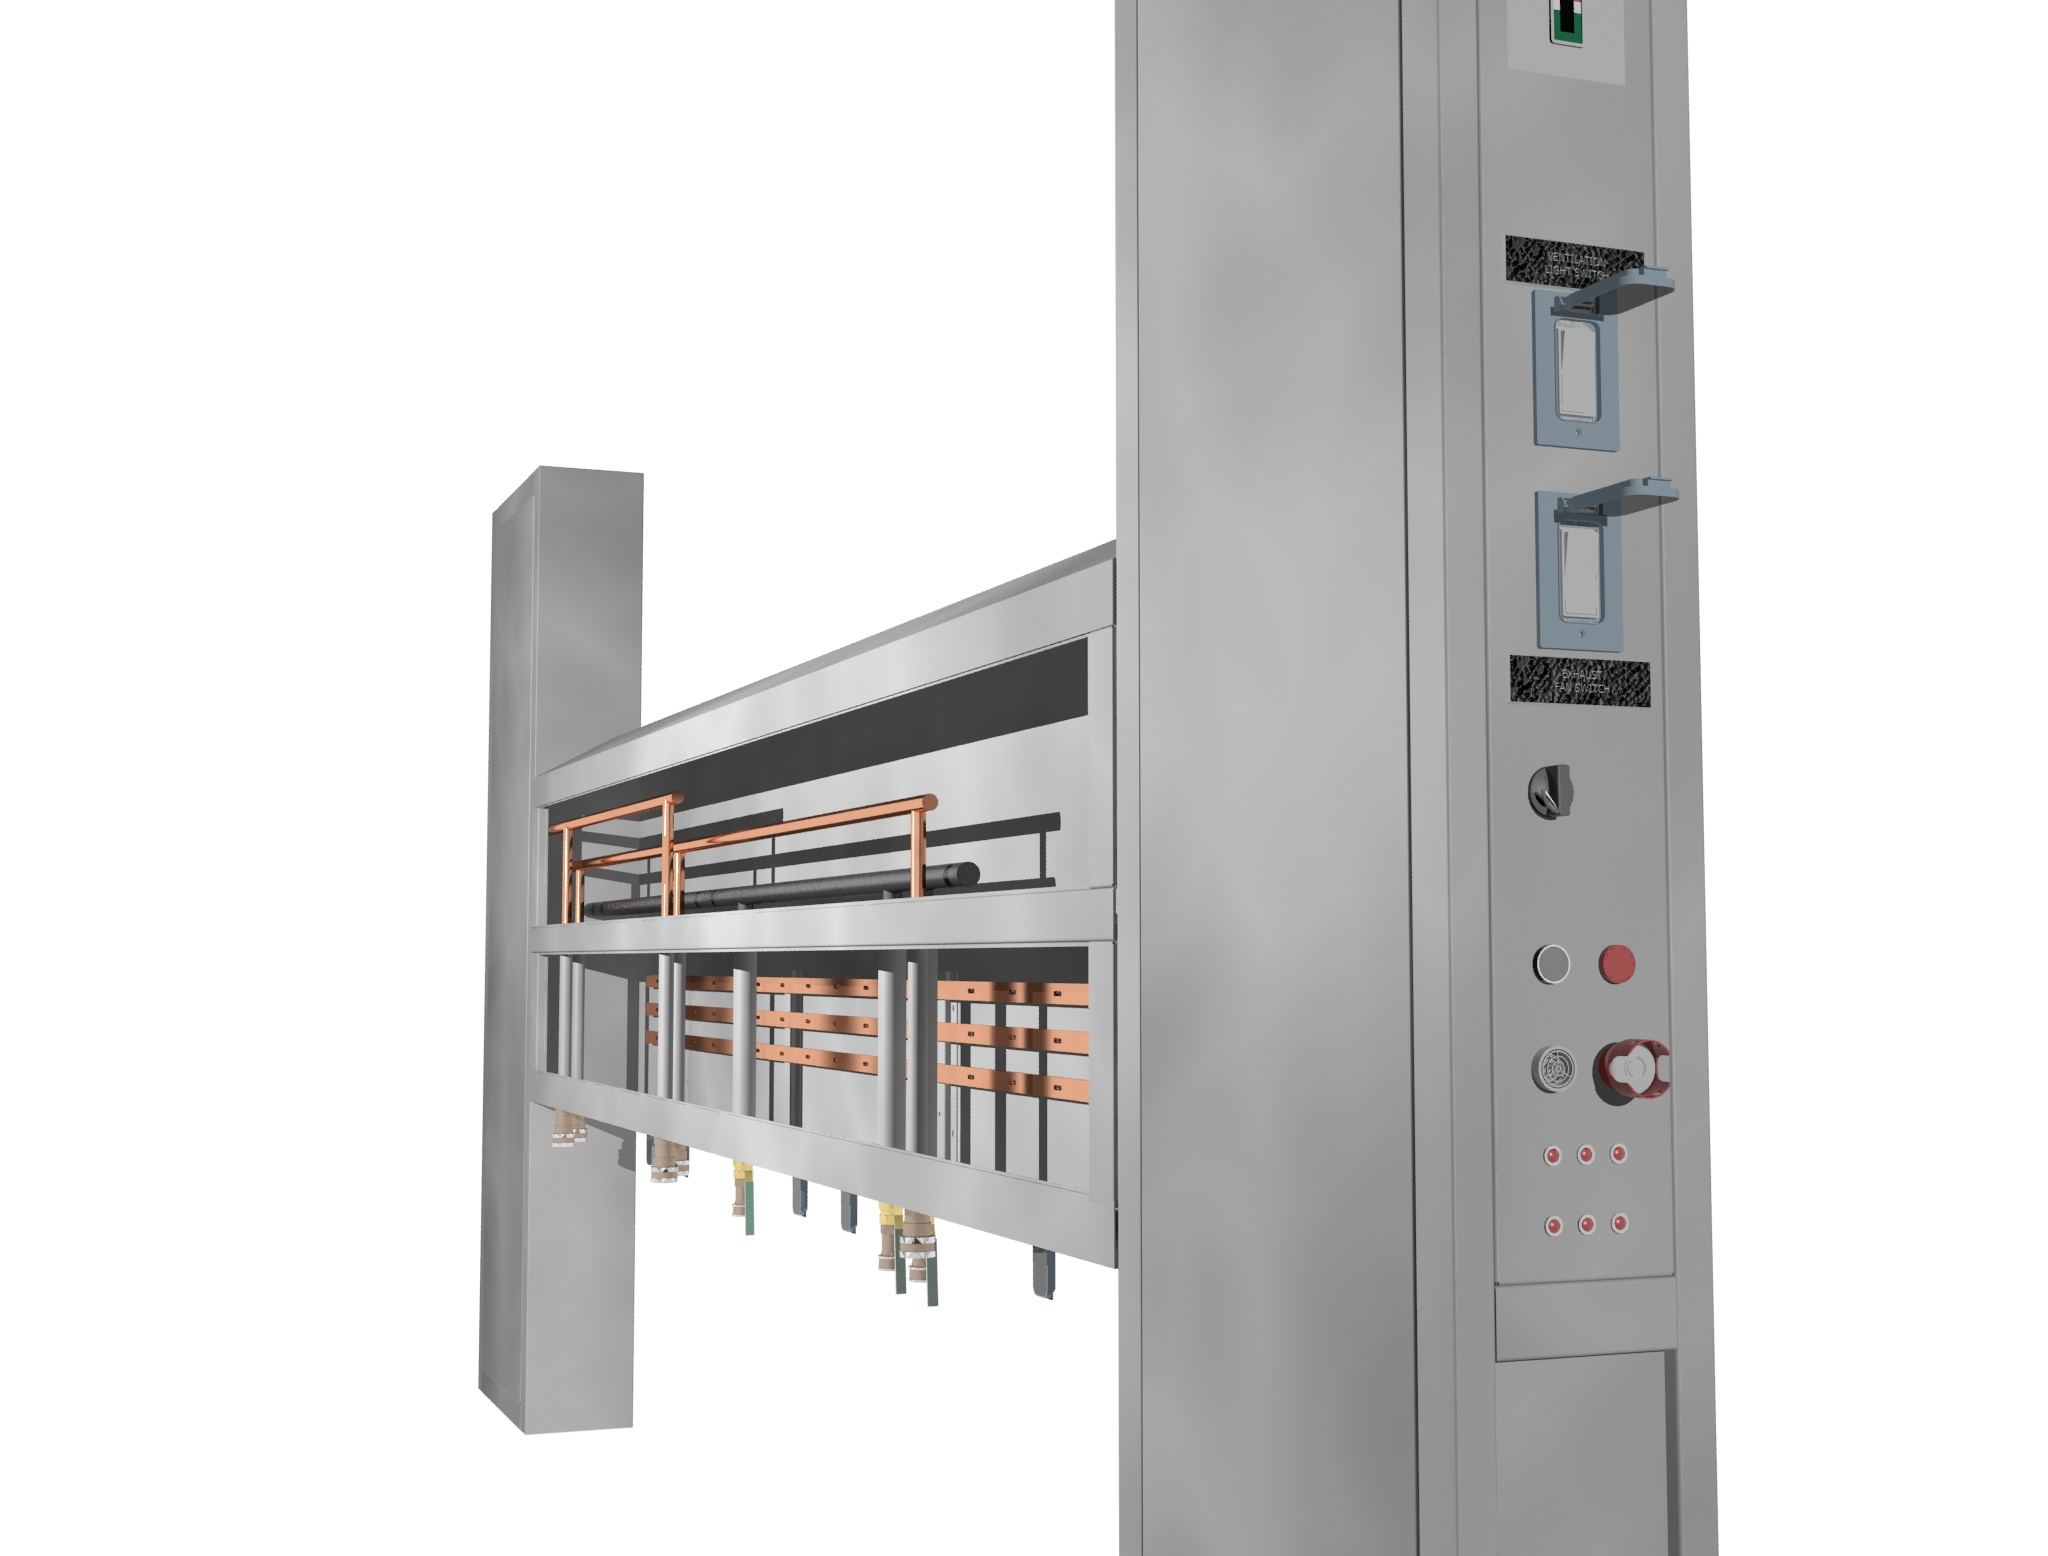 Caddy Corporation Utility Distribution Systems